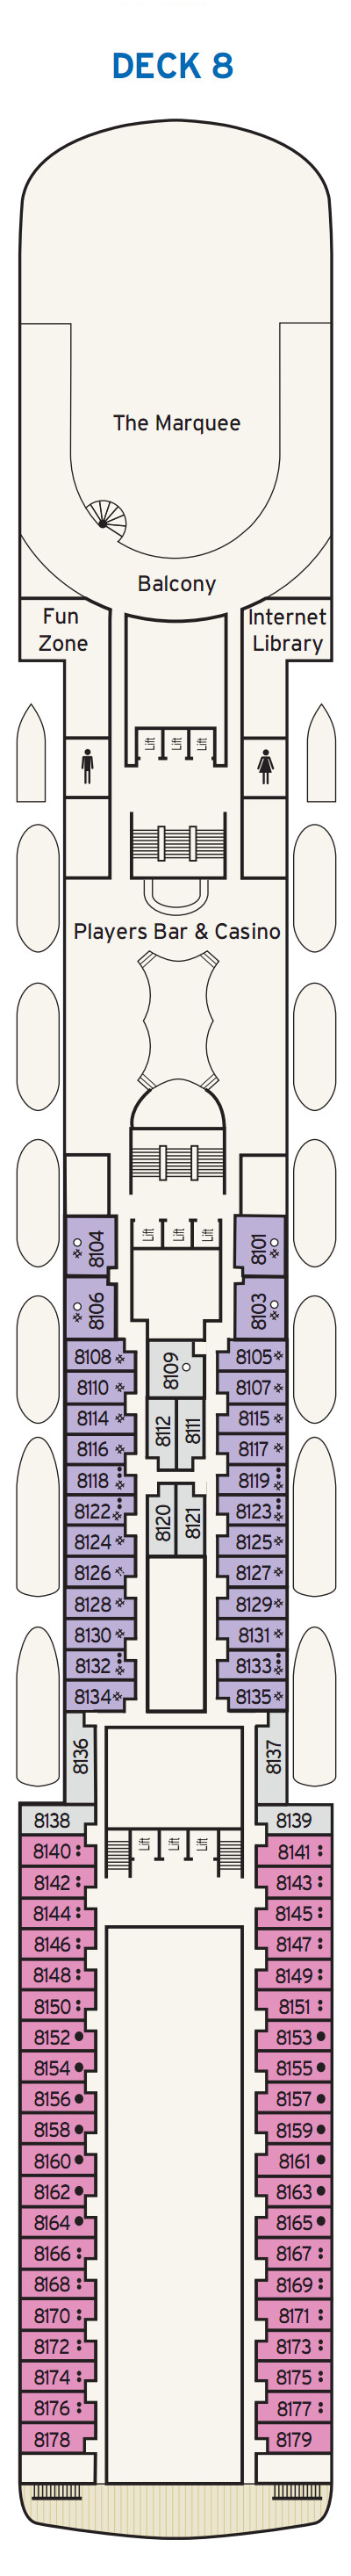 P&O - Pacific Jewel Deck 8 layout